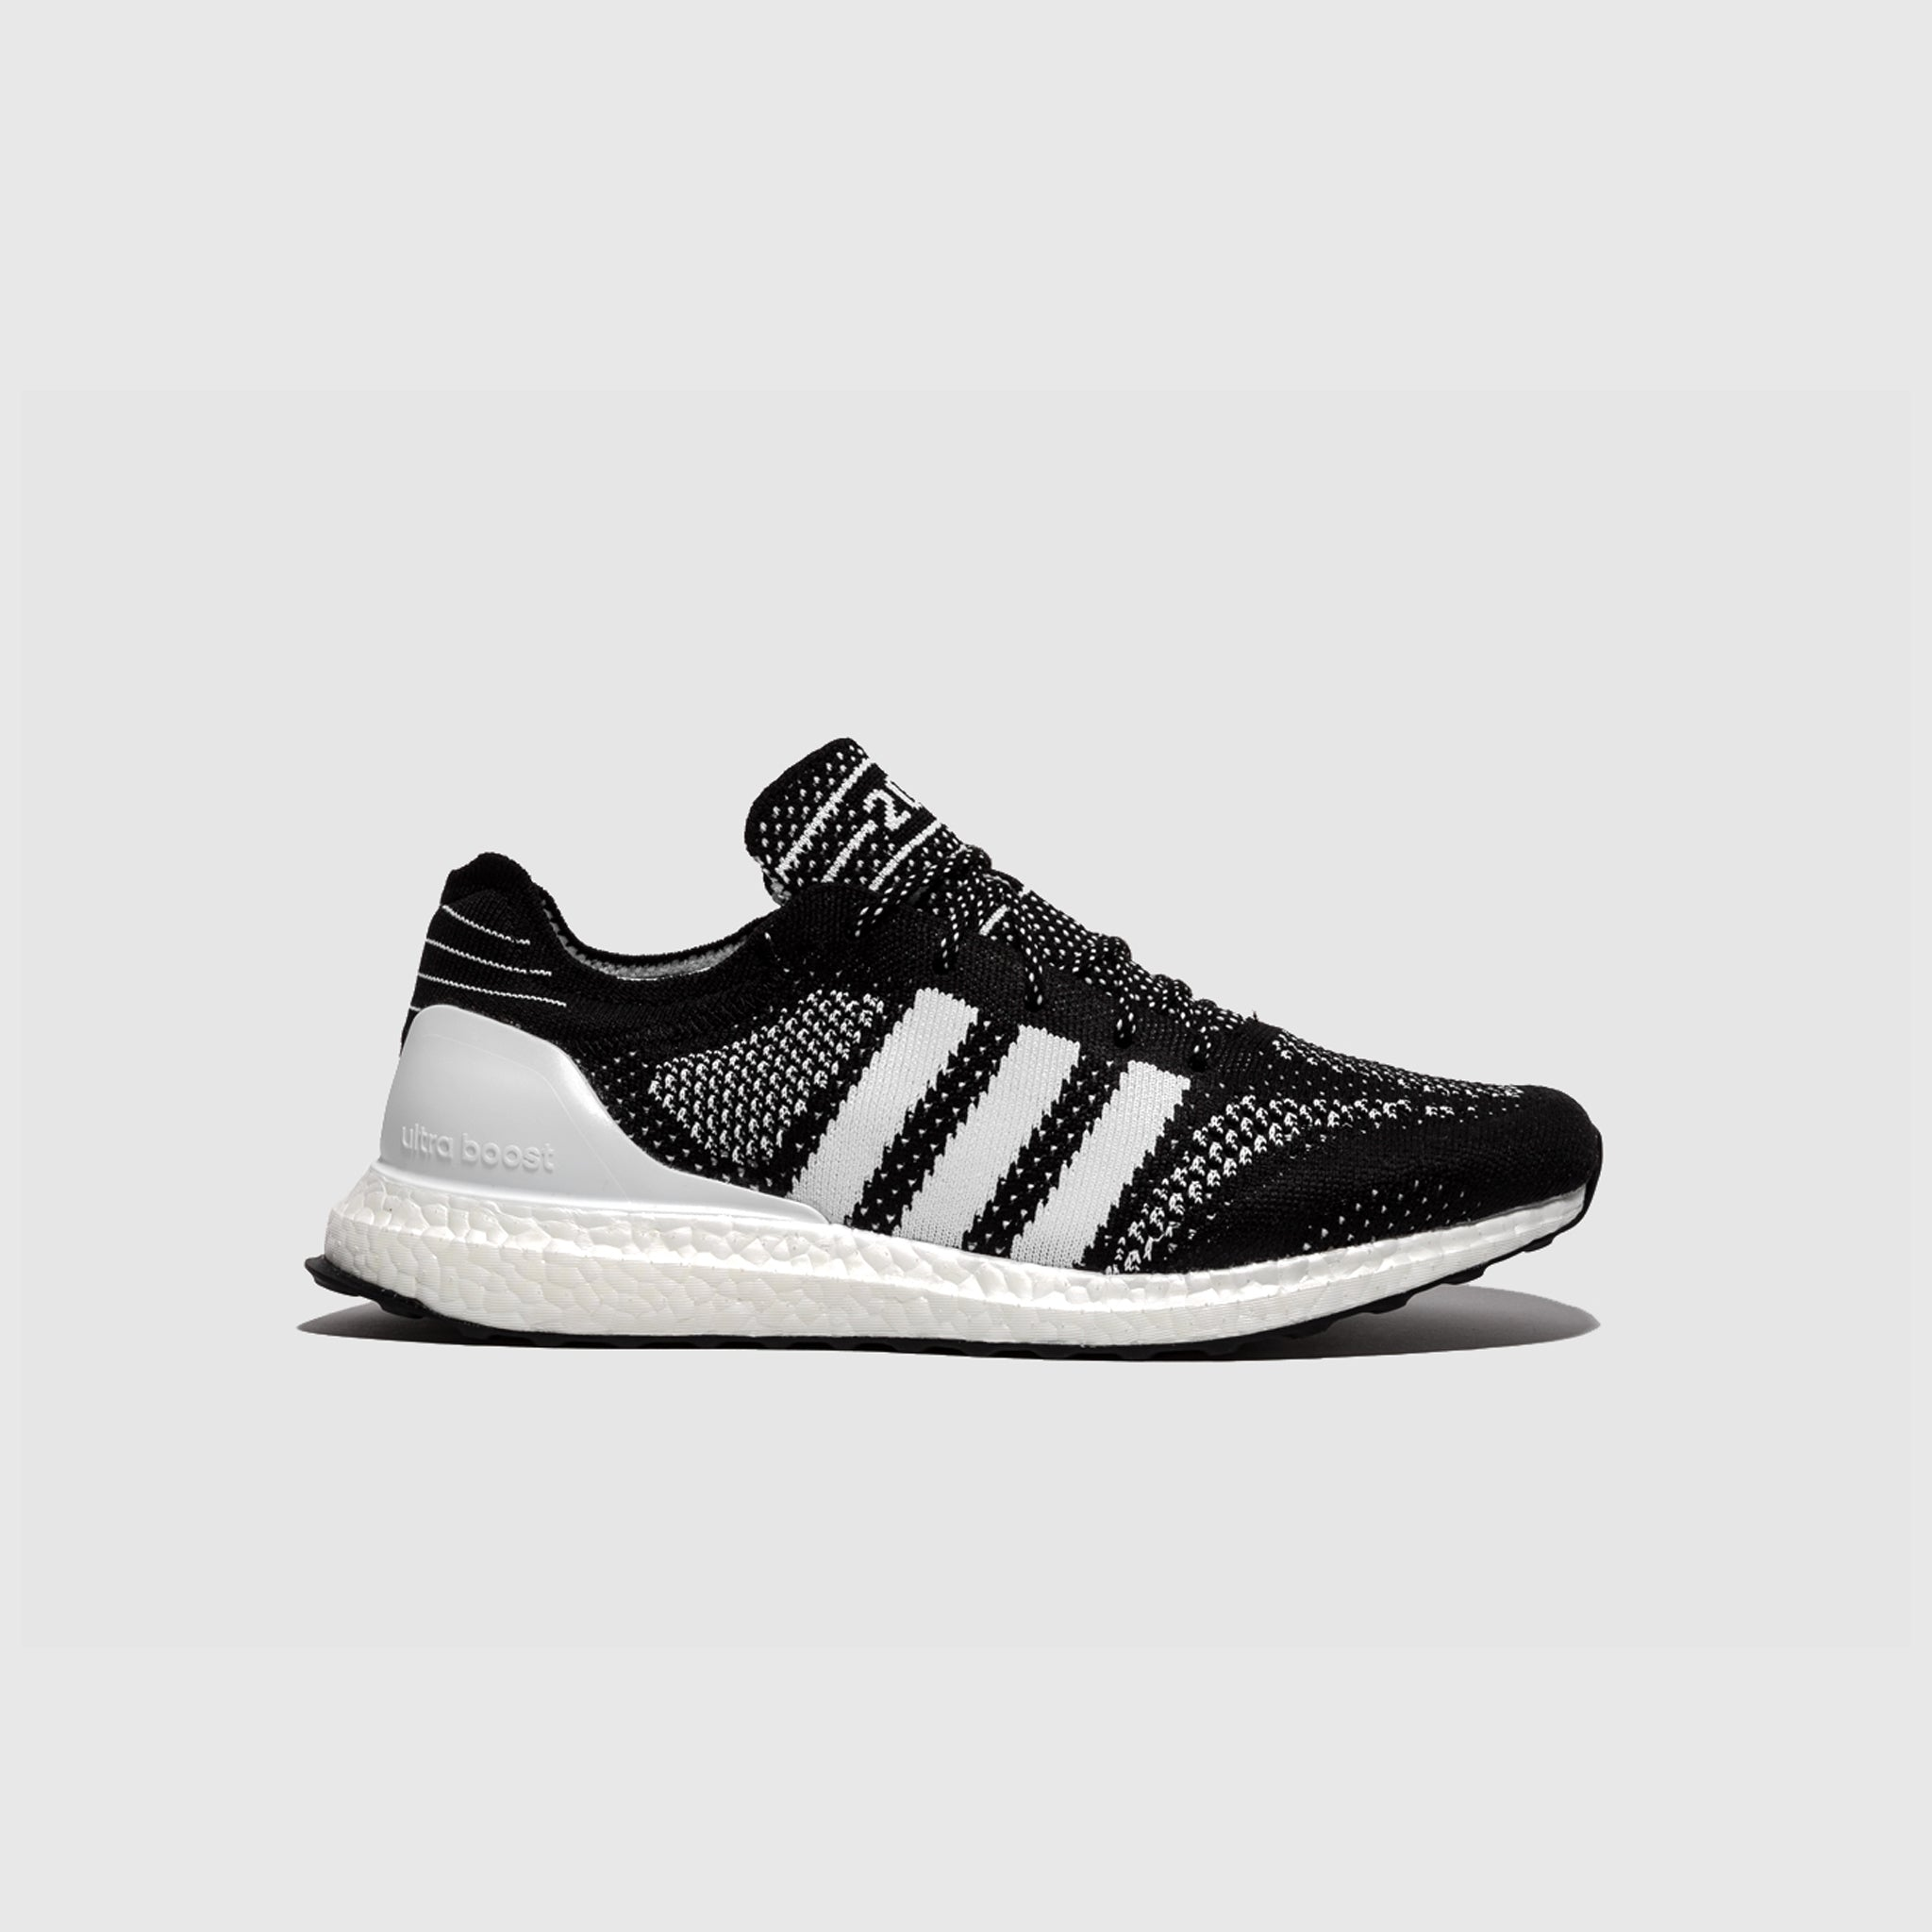 ADIDAS ULTRABOOST DNA PRIME